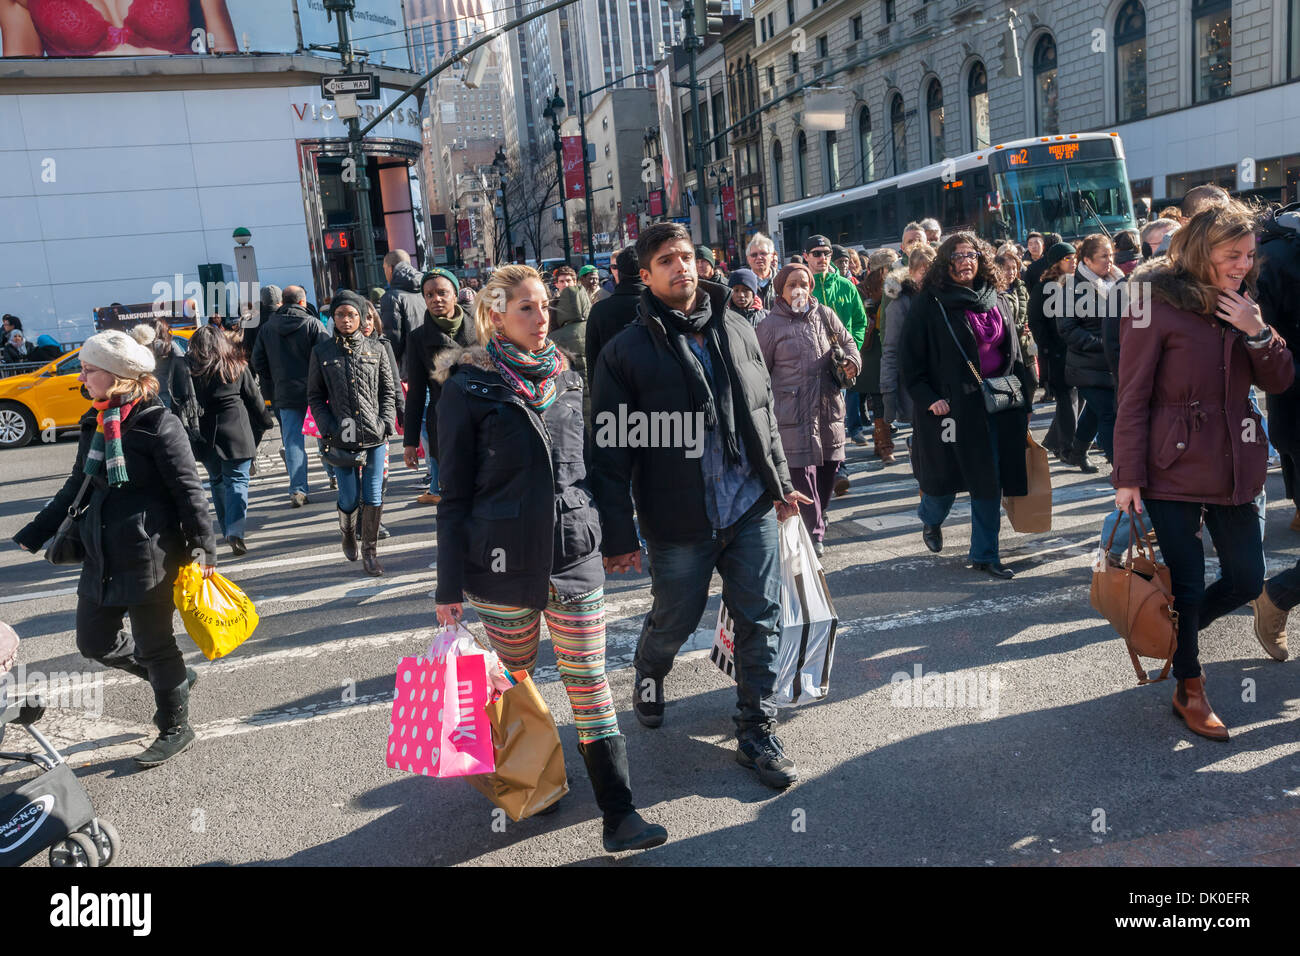 cb742be086 Shoppers in Herald Square outside Macy s Herald Square flagship store in  New York